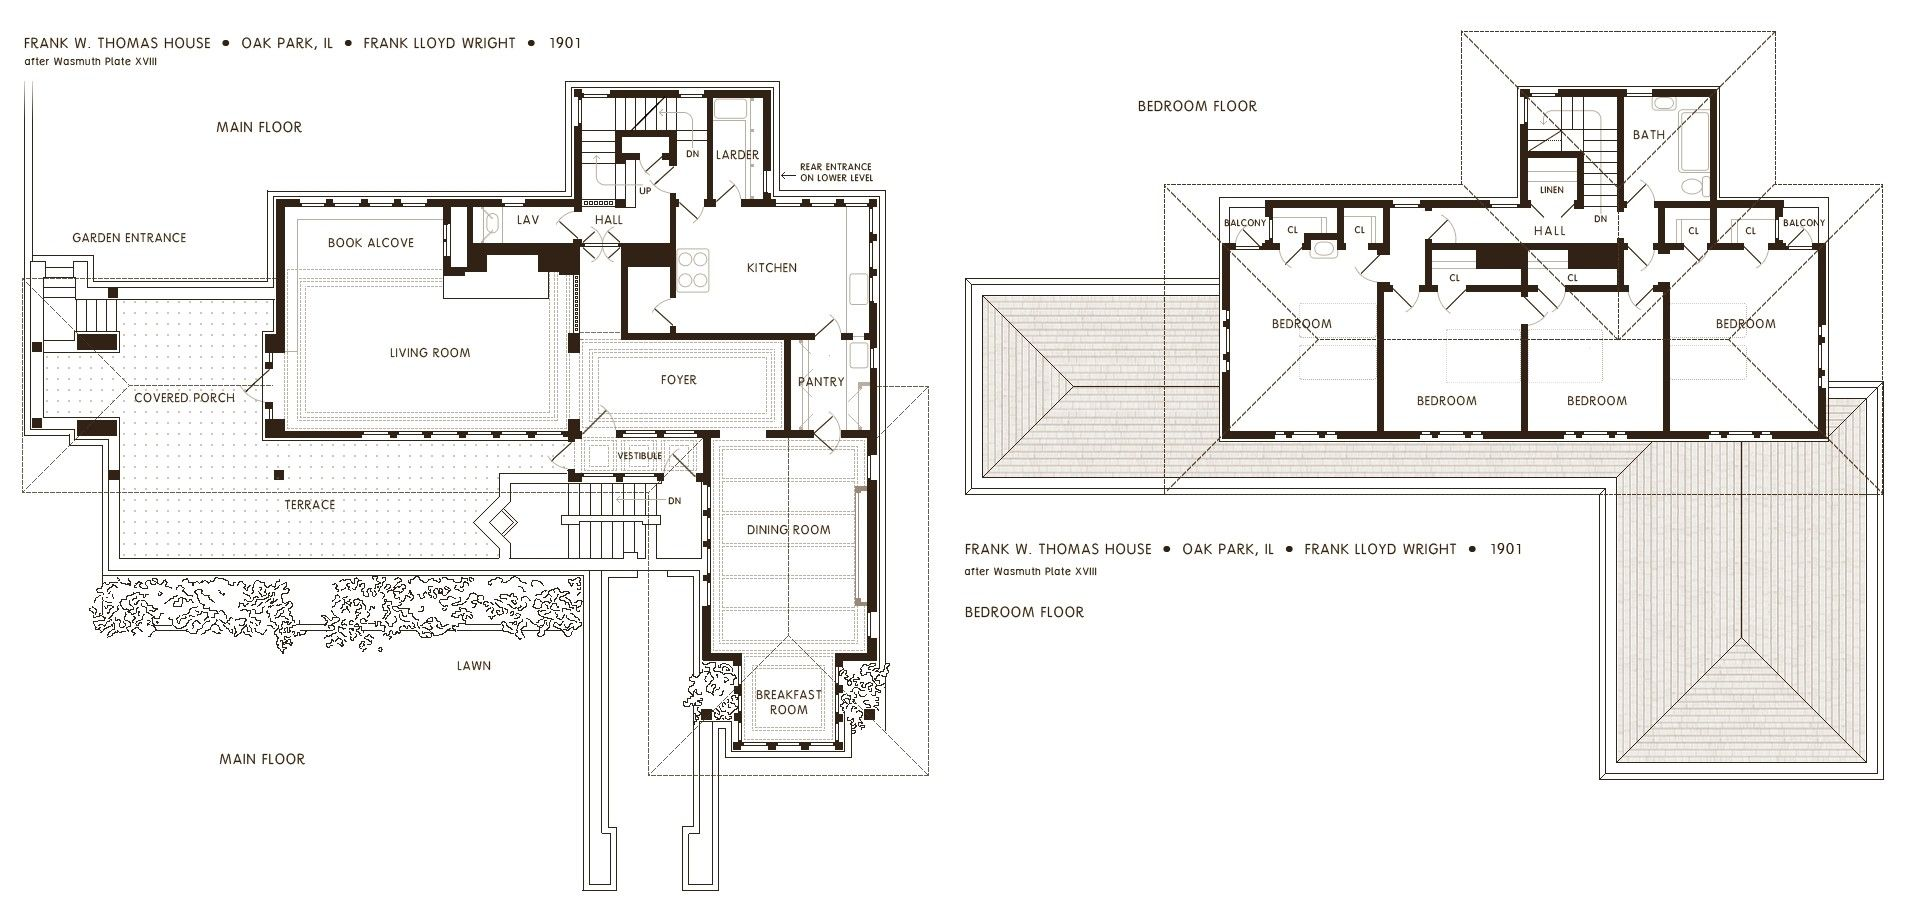 The Floor Plan Of The Frank Thomas House By Frank Lloyd Wright 1901 1927 910 Usonian House Studio Floor Plans Frank Lloyd Wright Homes